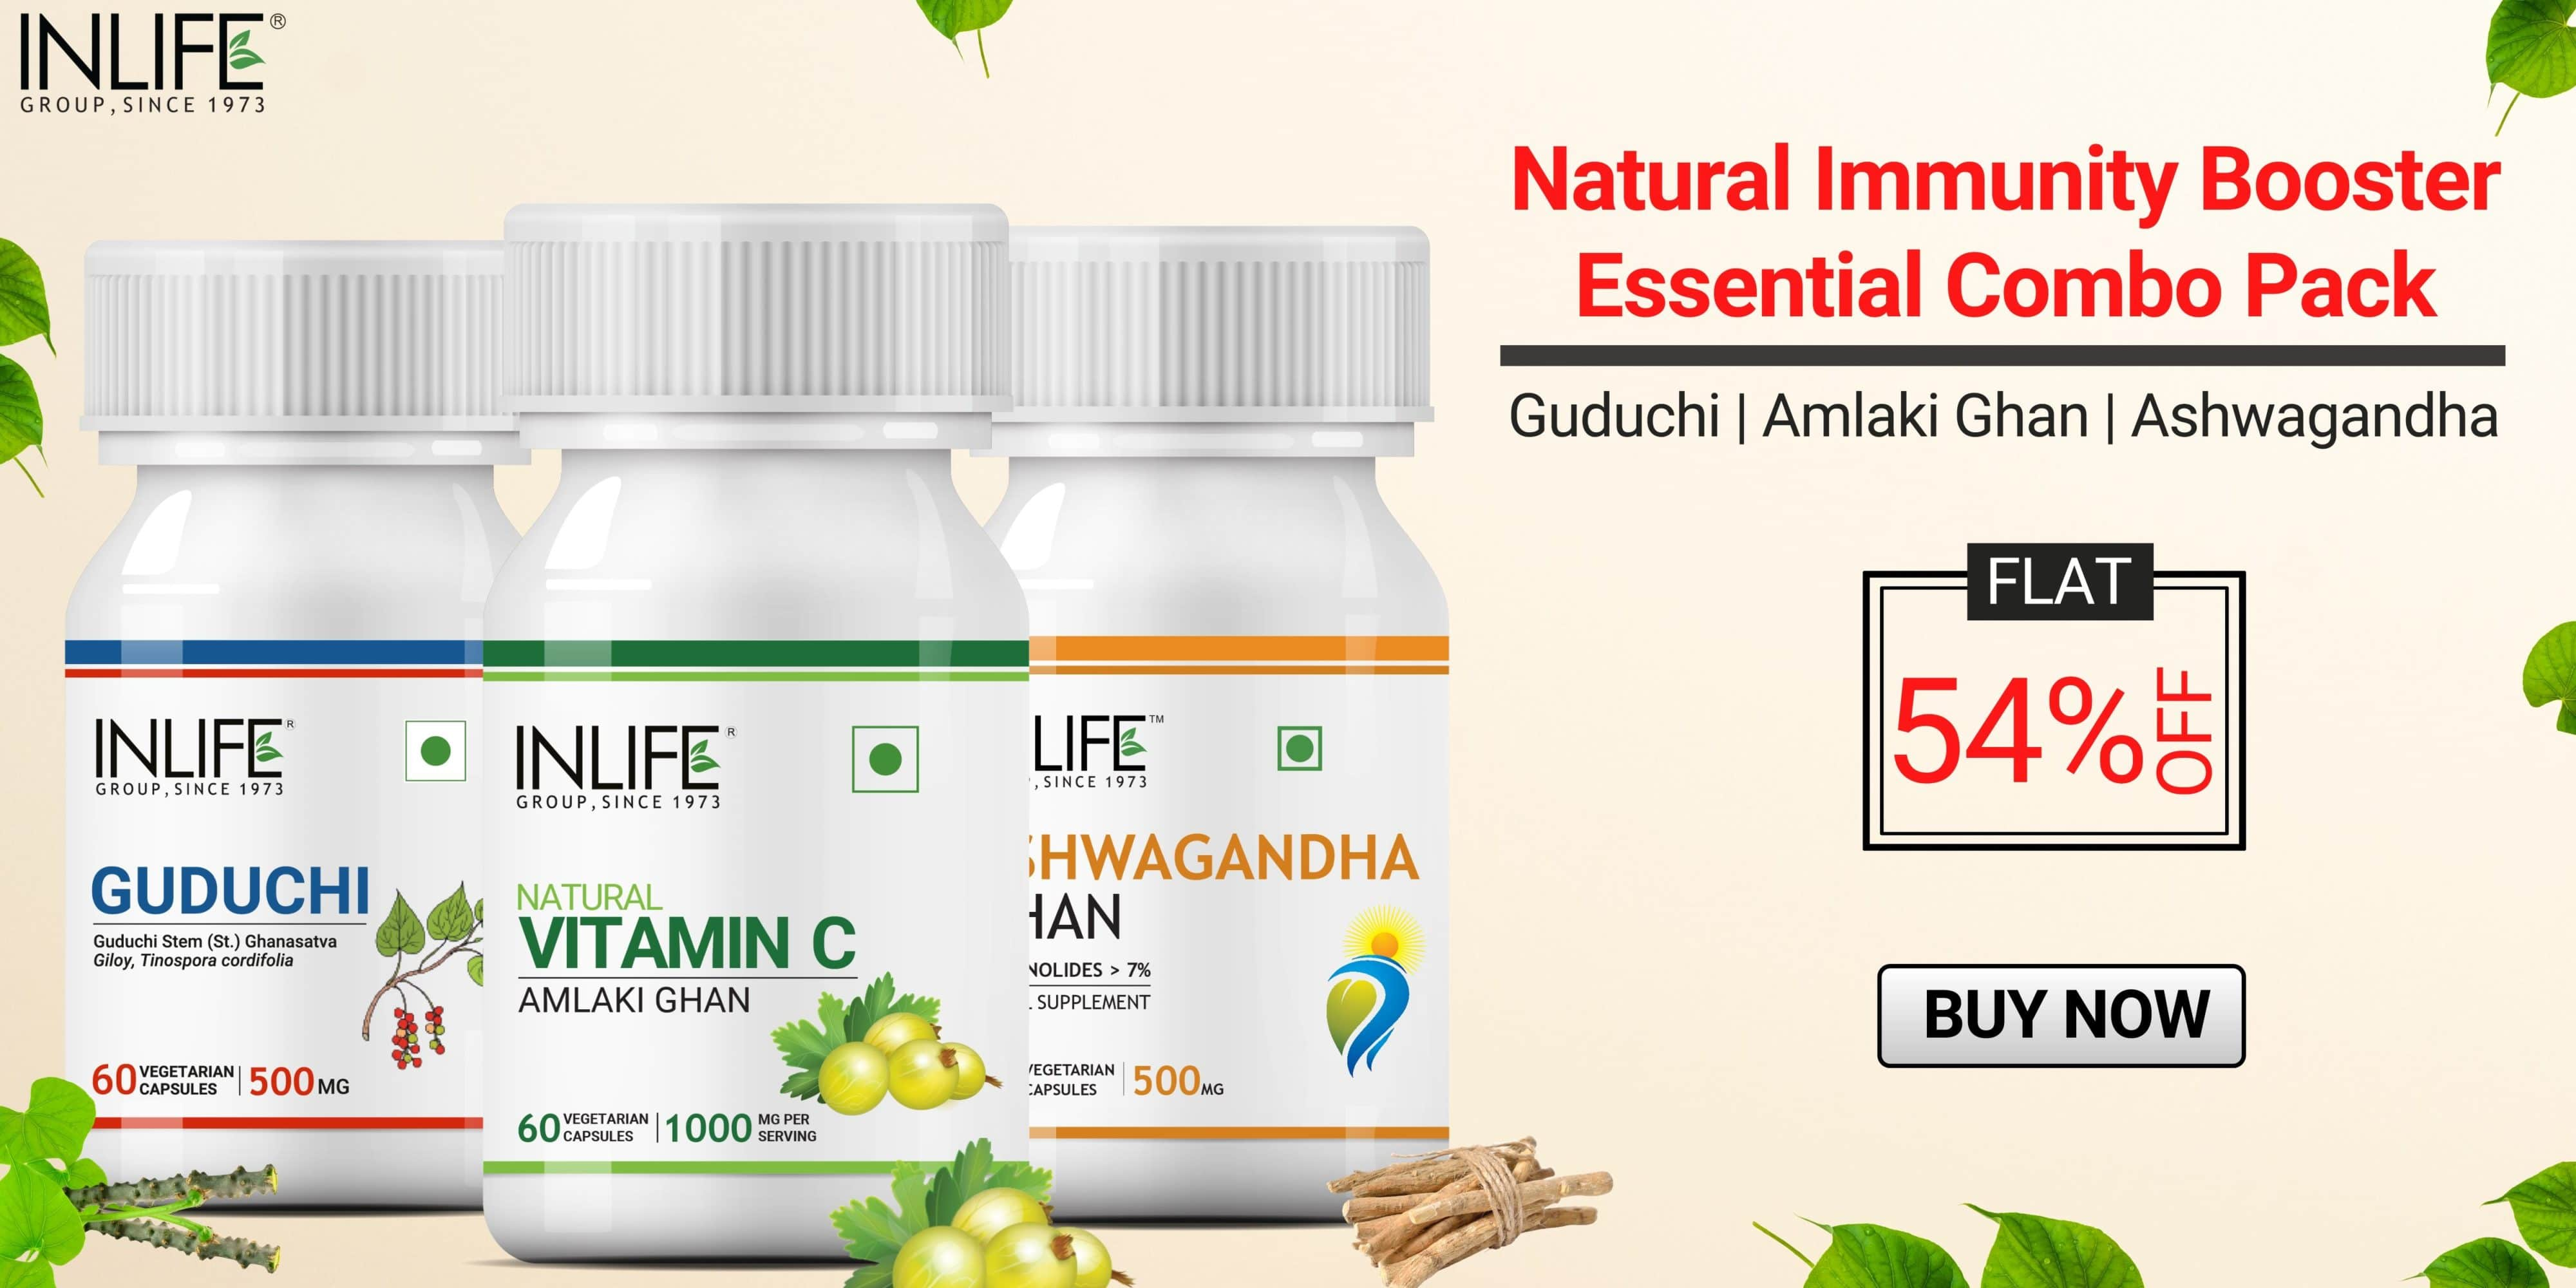 Natural immunity booster essential combo